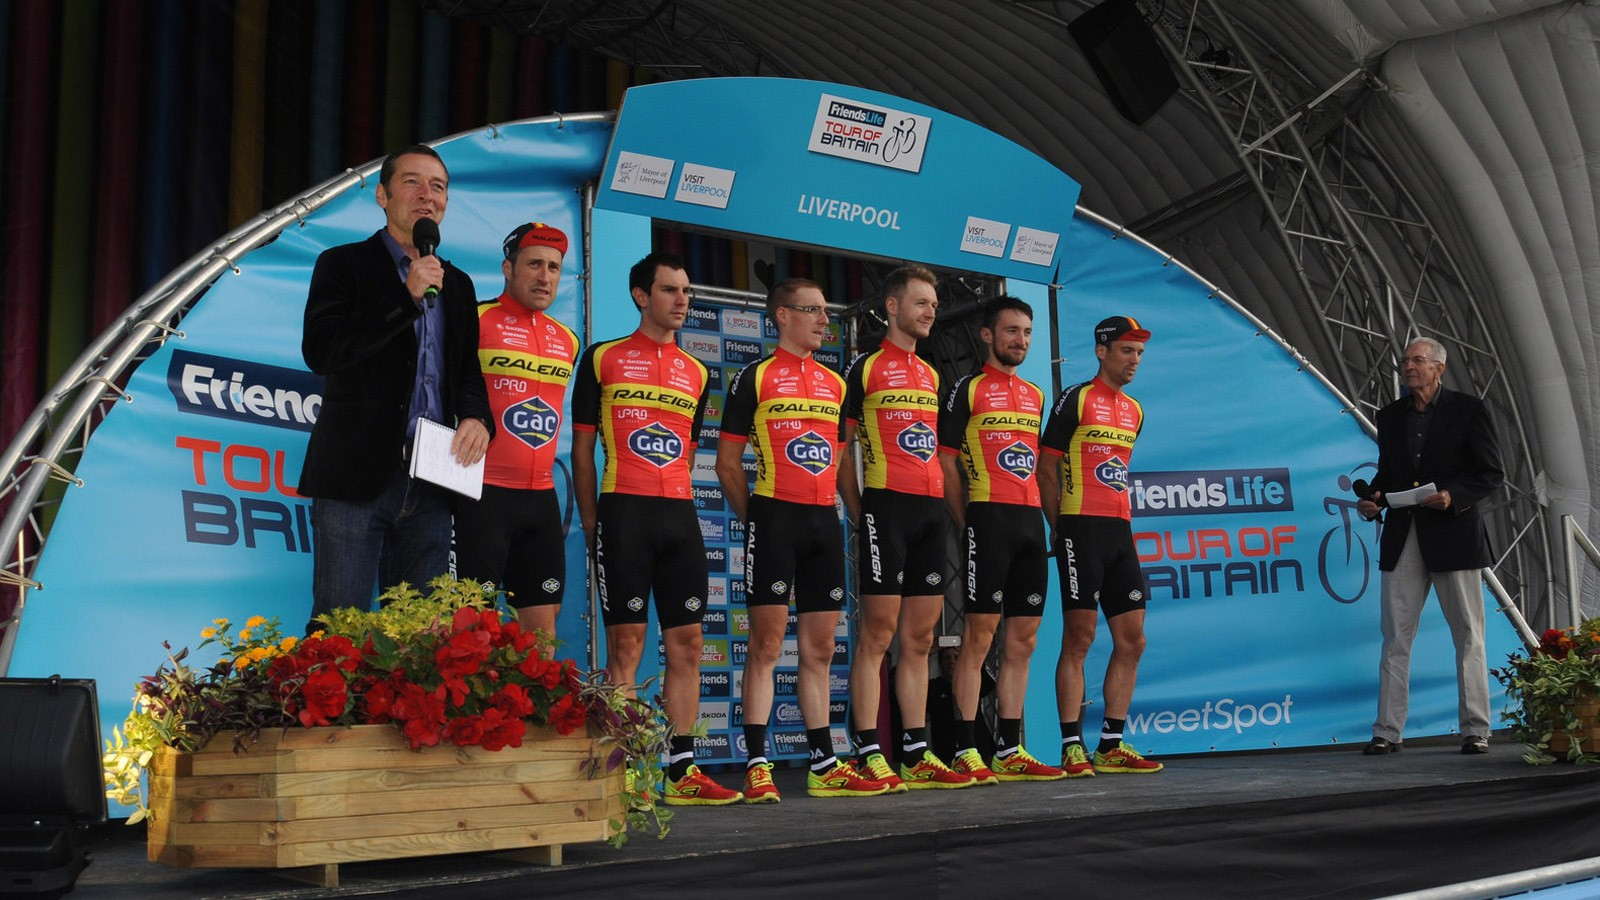 Team Raleigh on the podium being introduced